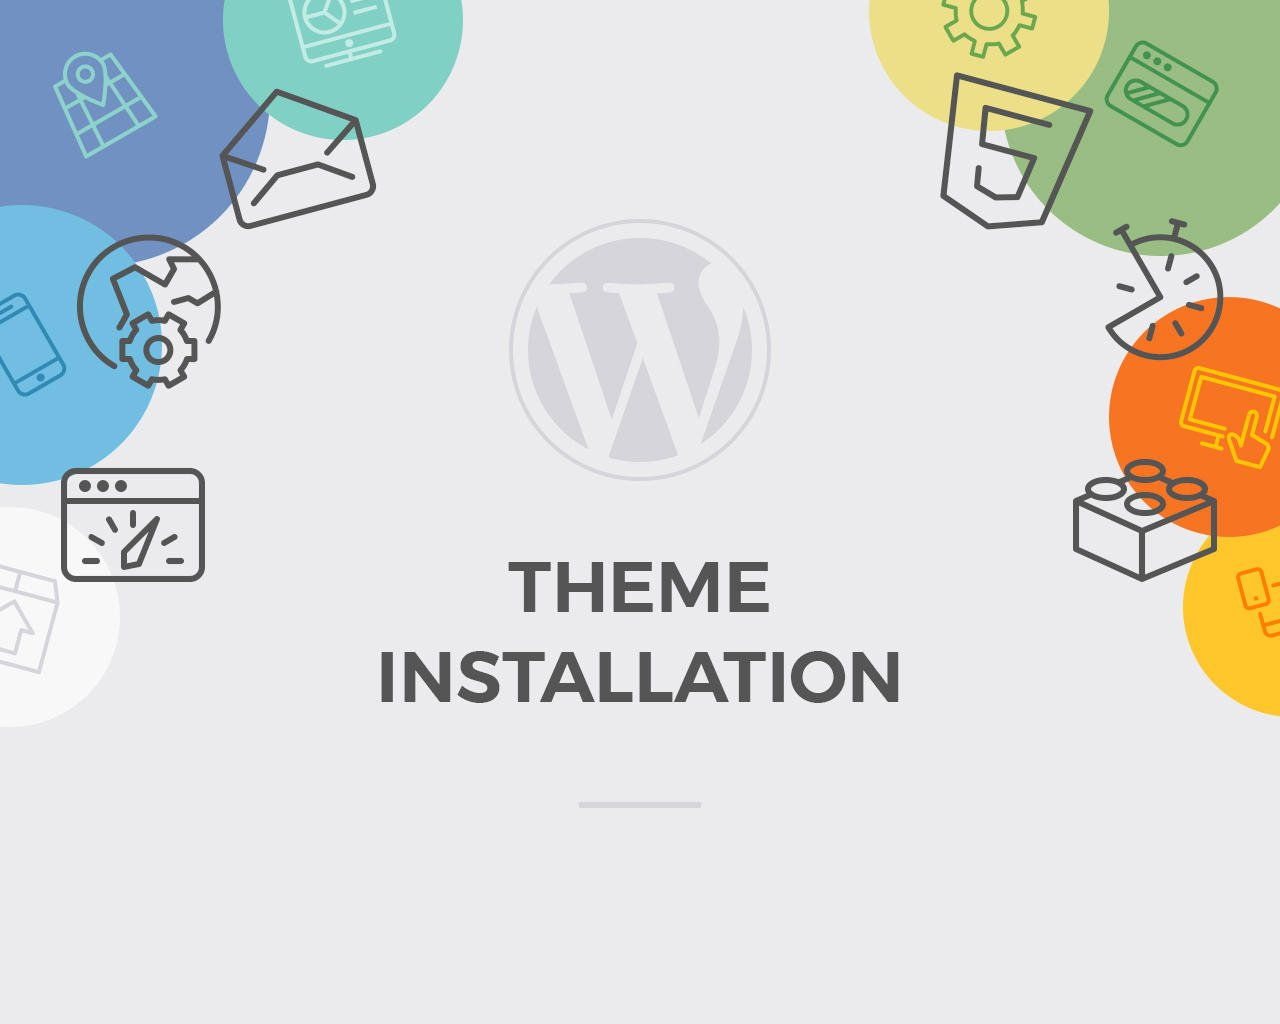 WordPress Theme Installation by QuanticaLabs - 107750